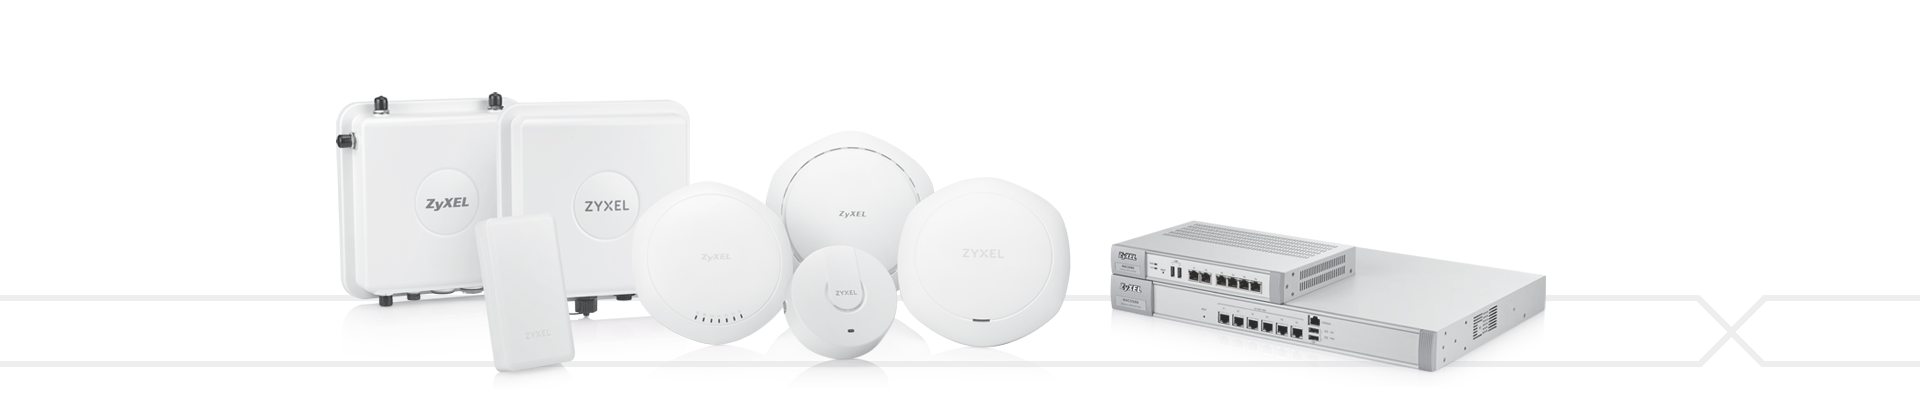 Zyxel WLAN APs and Controllers for Business